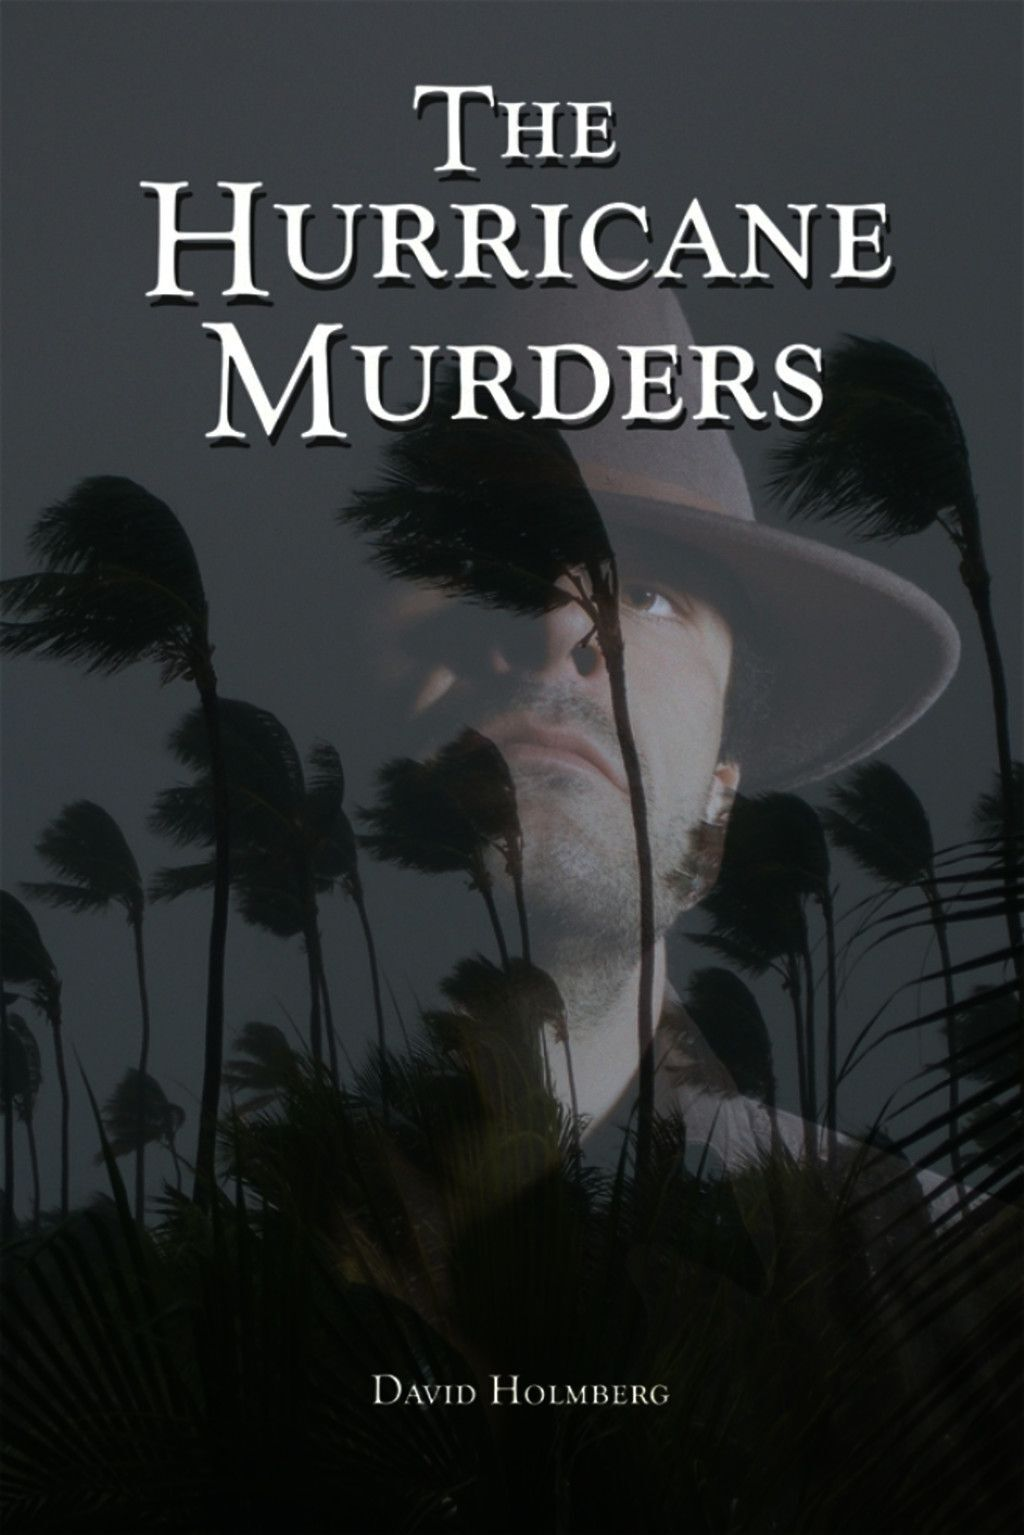 The Hurricane Murders